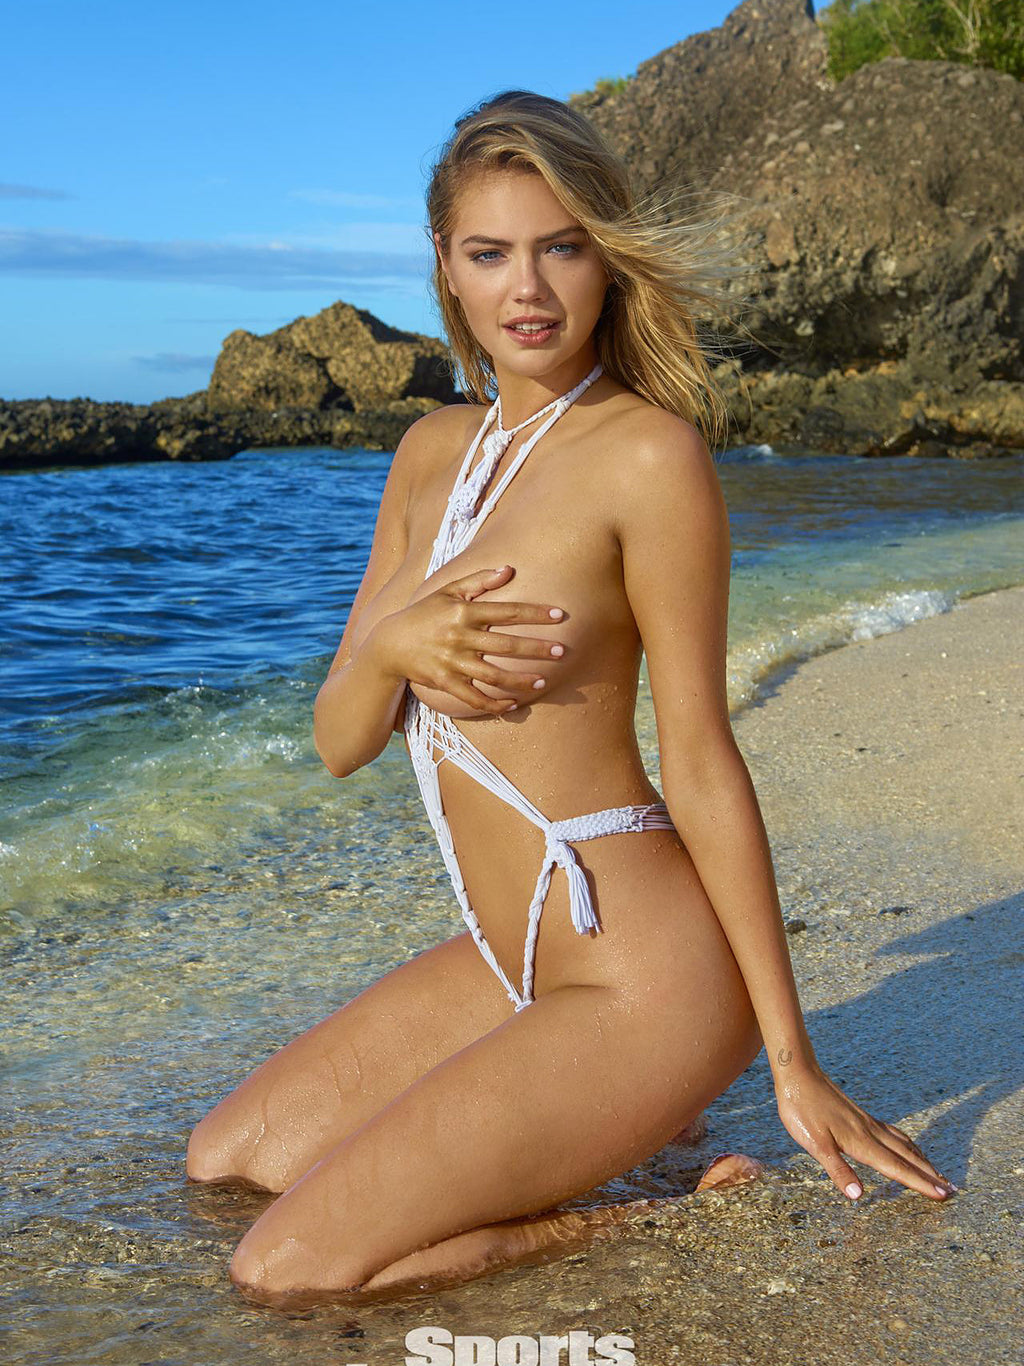 Kate Upton Intimates - Macrame looks awesome on the beach!